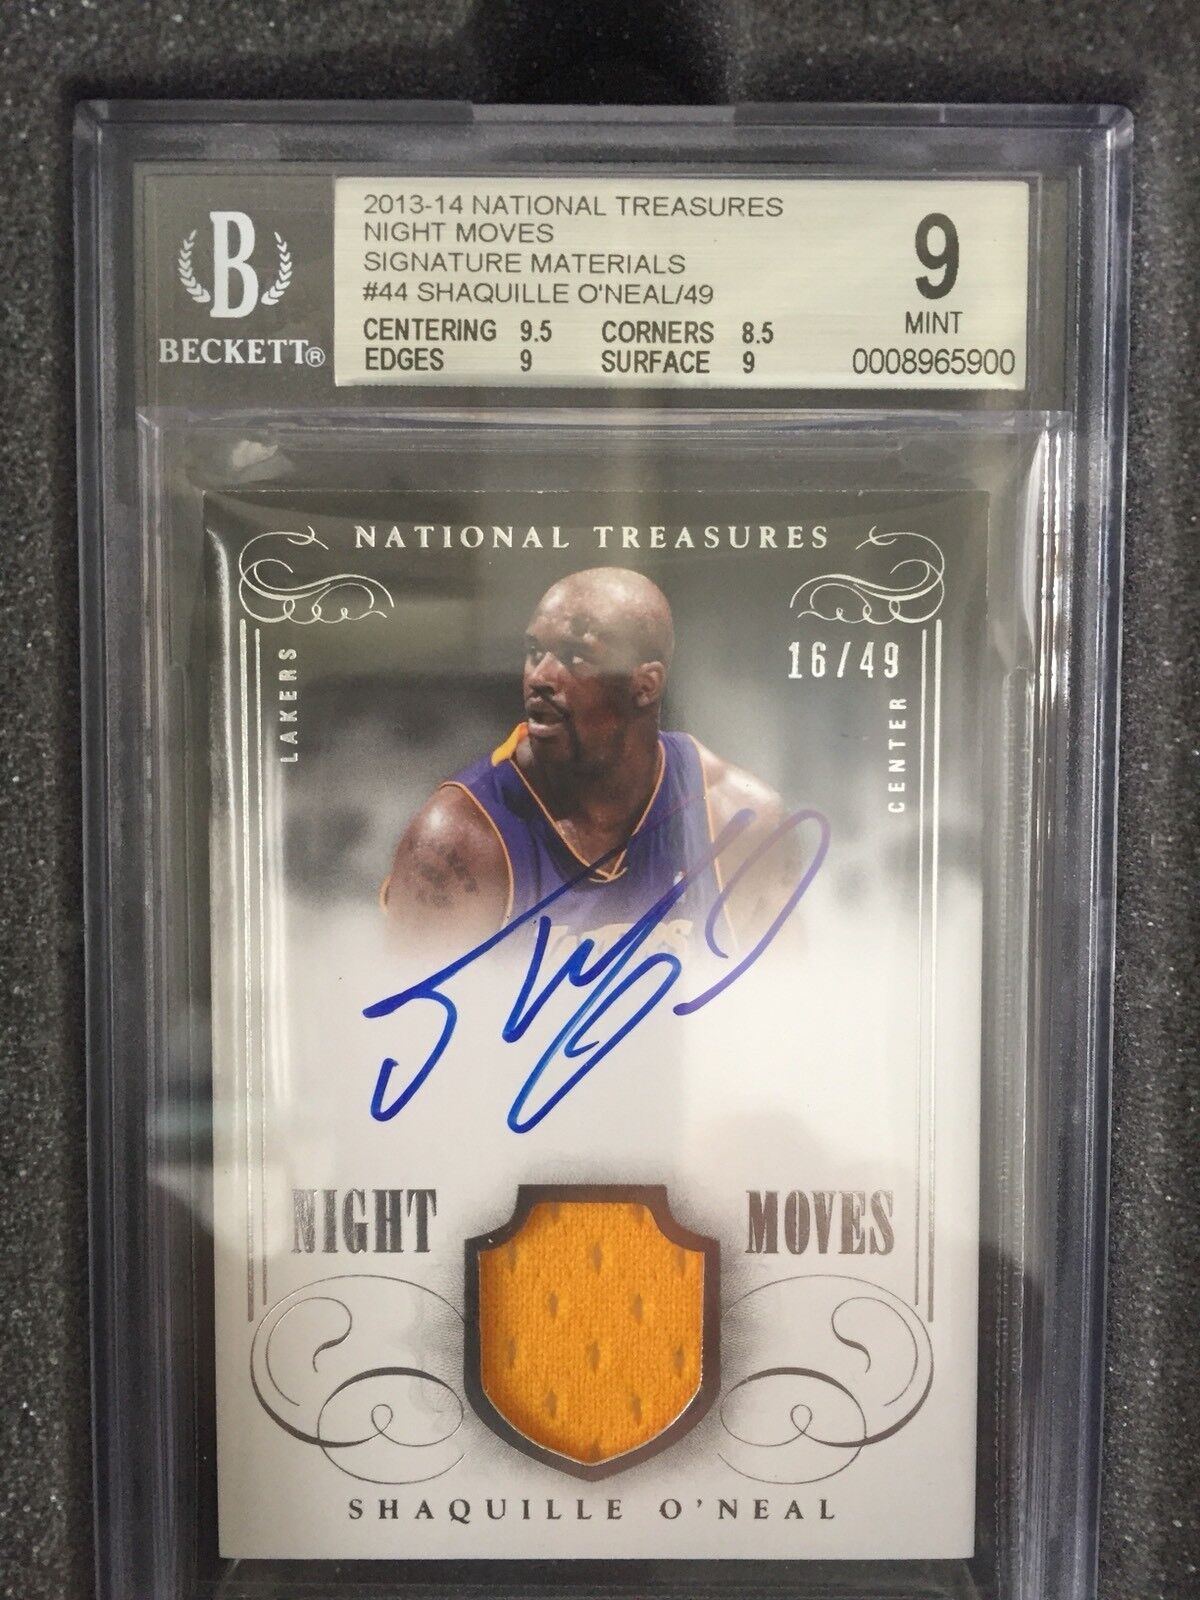 2013/14 national treasures night moves signature materials shaquille o'neal /49